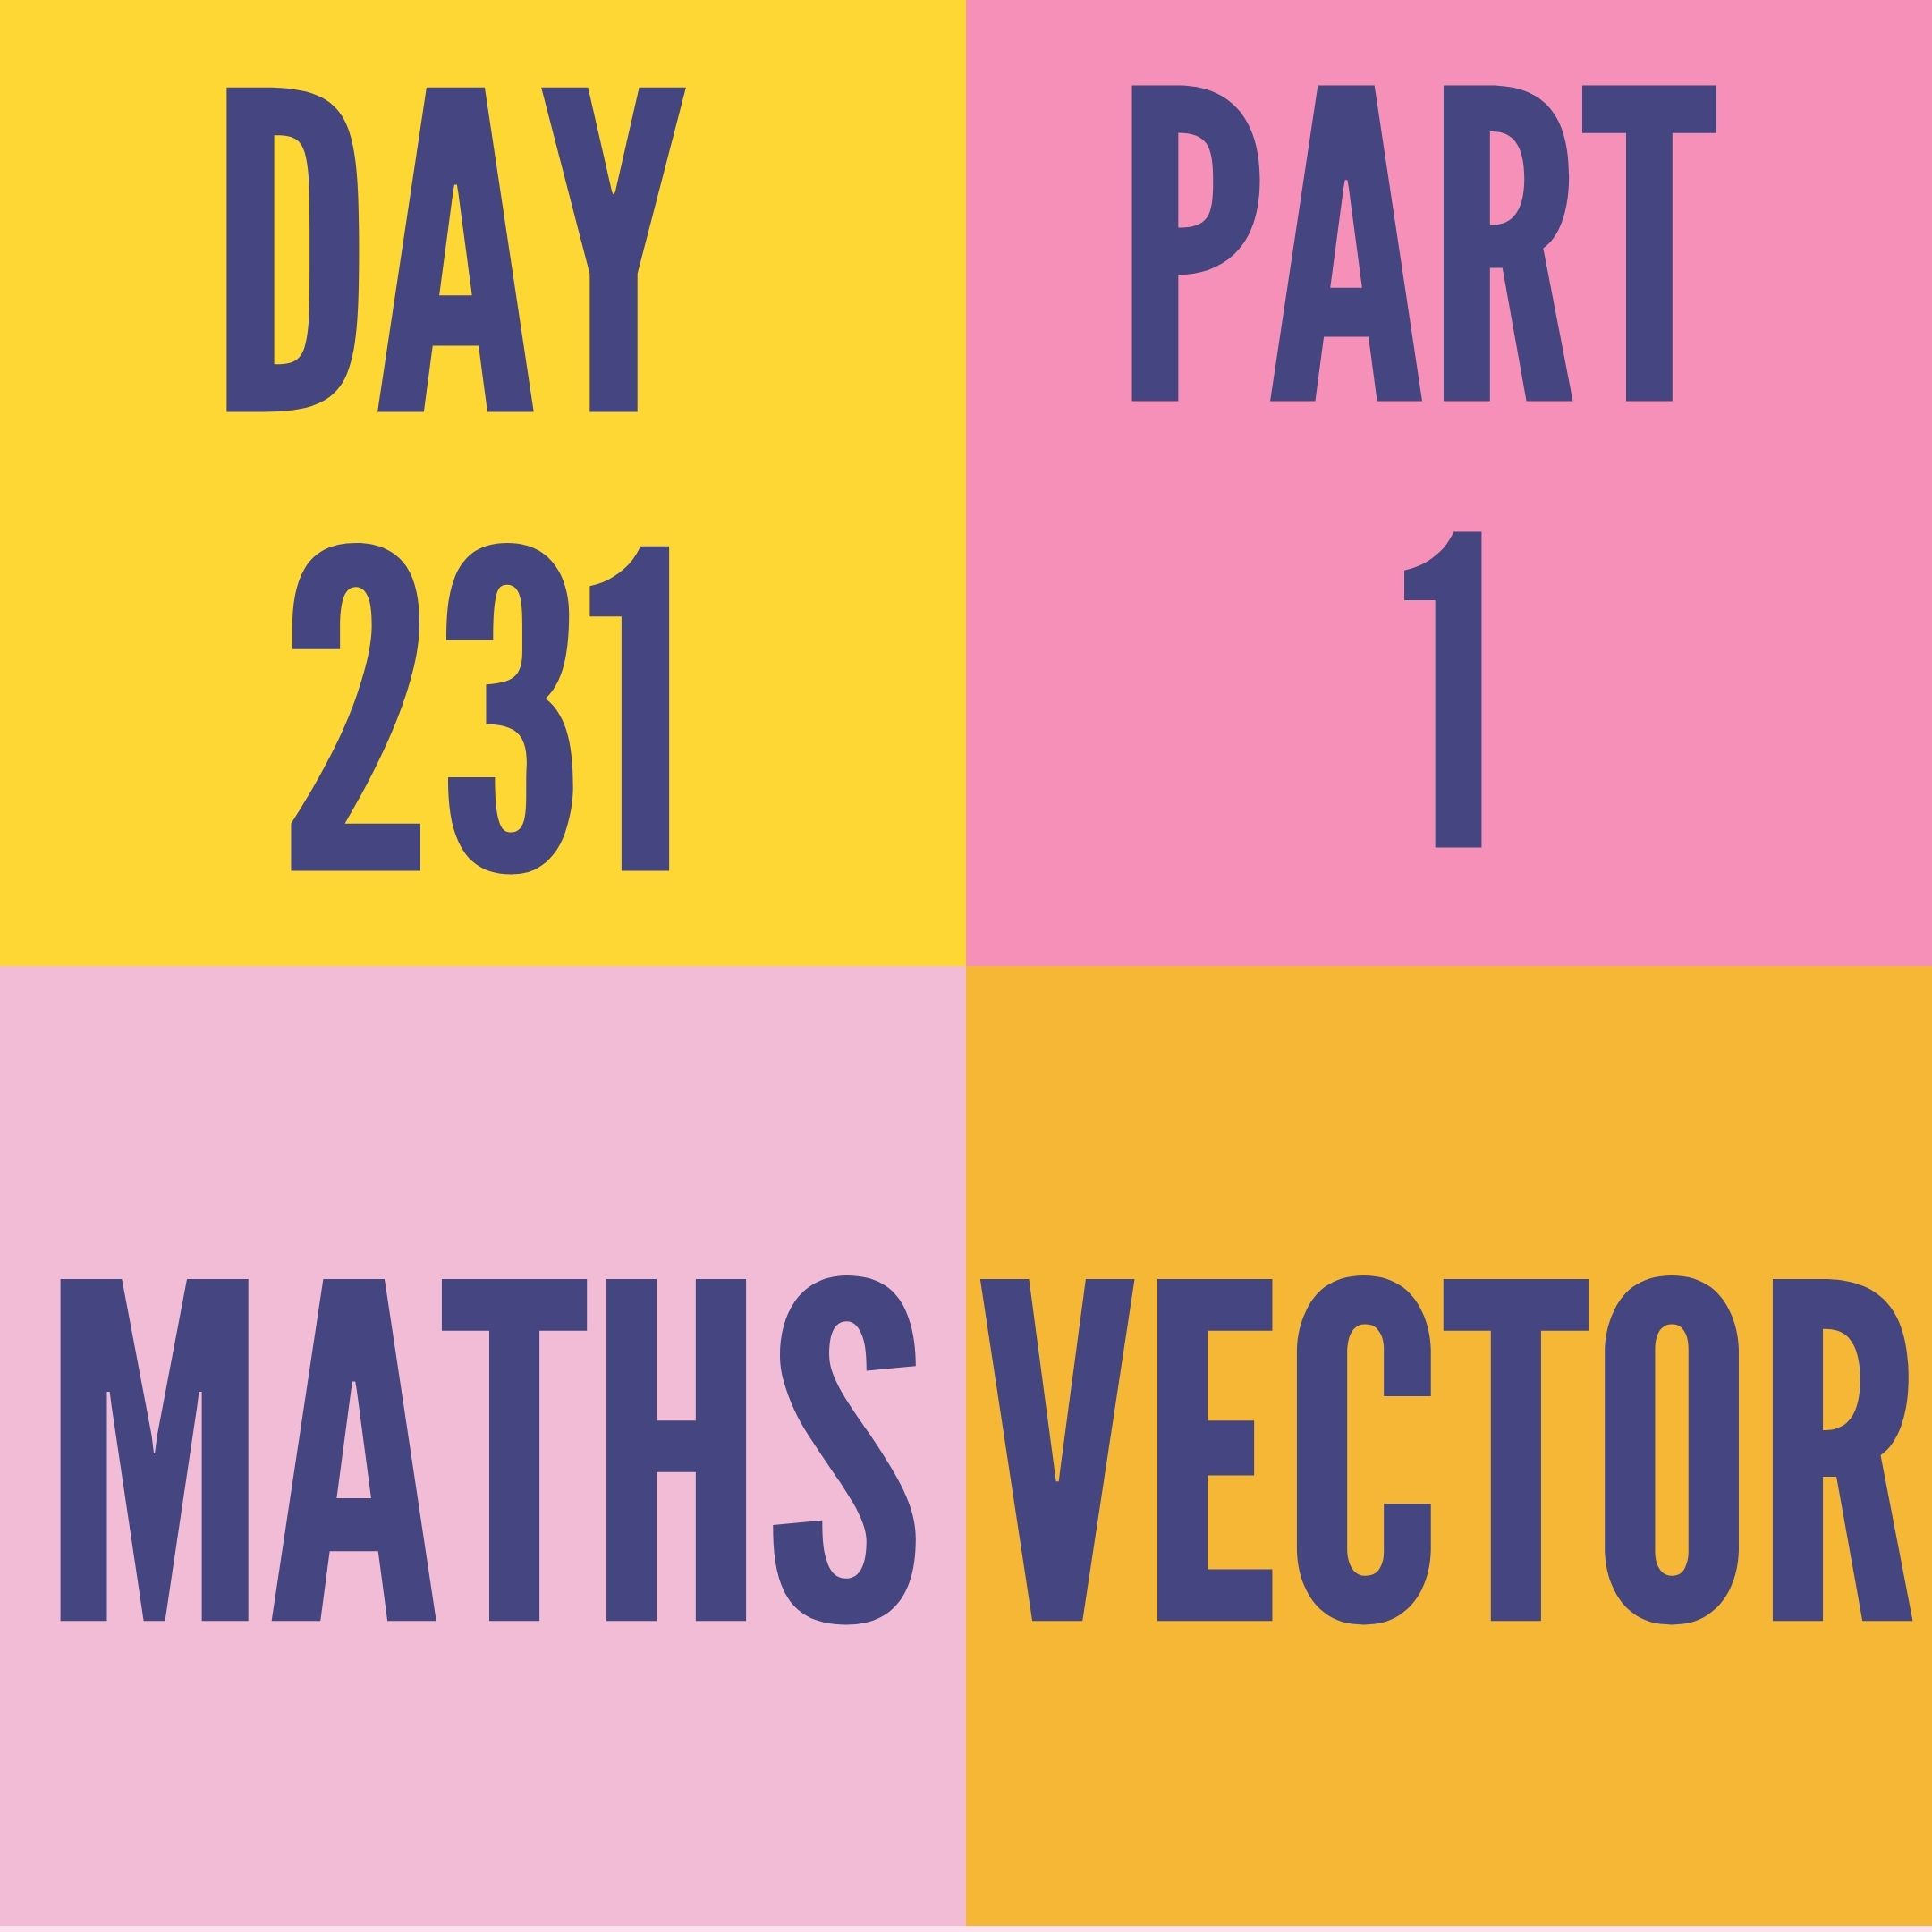 DAY-231 PART-1 VECTOR